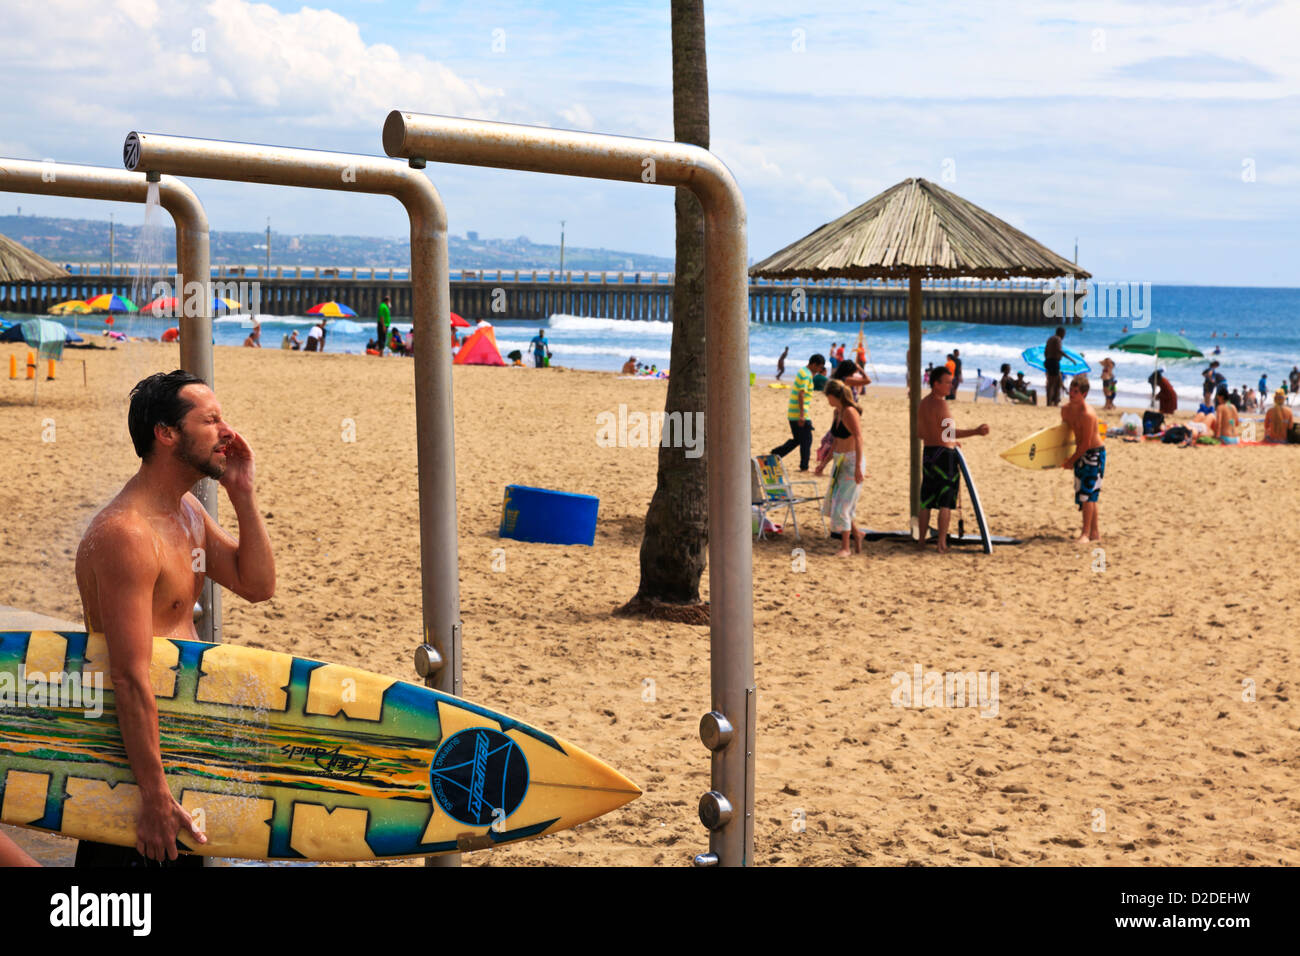 Durban, South Africa. A surfer makes use of the showers placed along ...